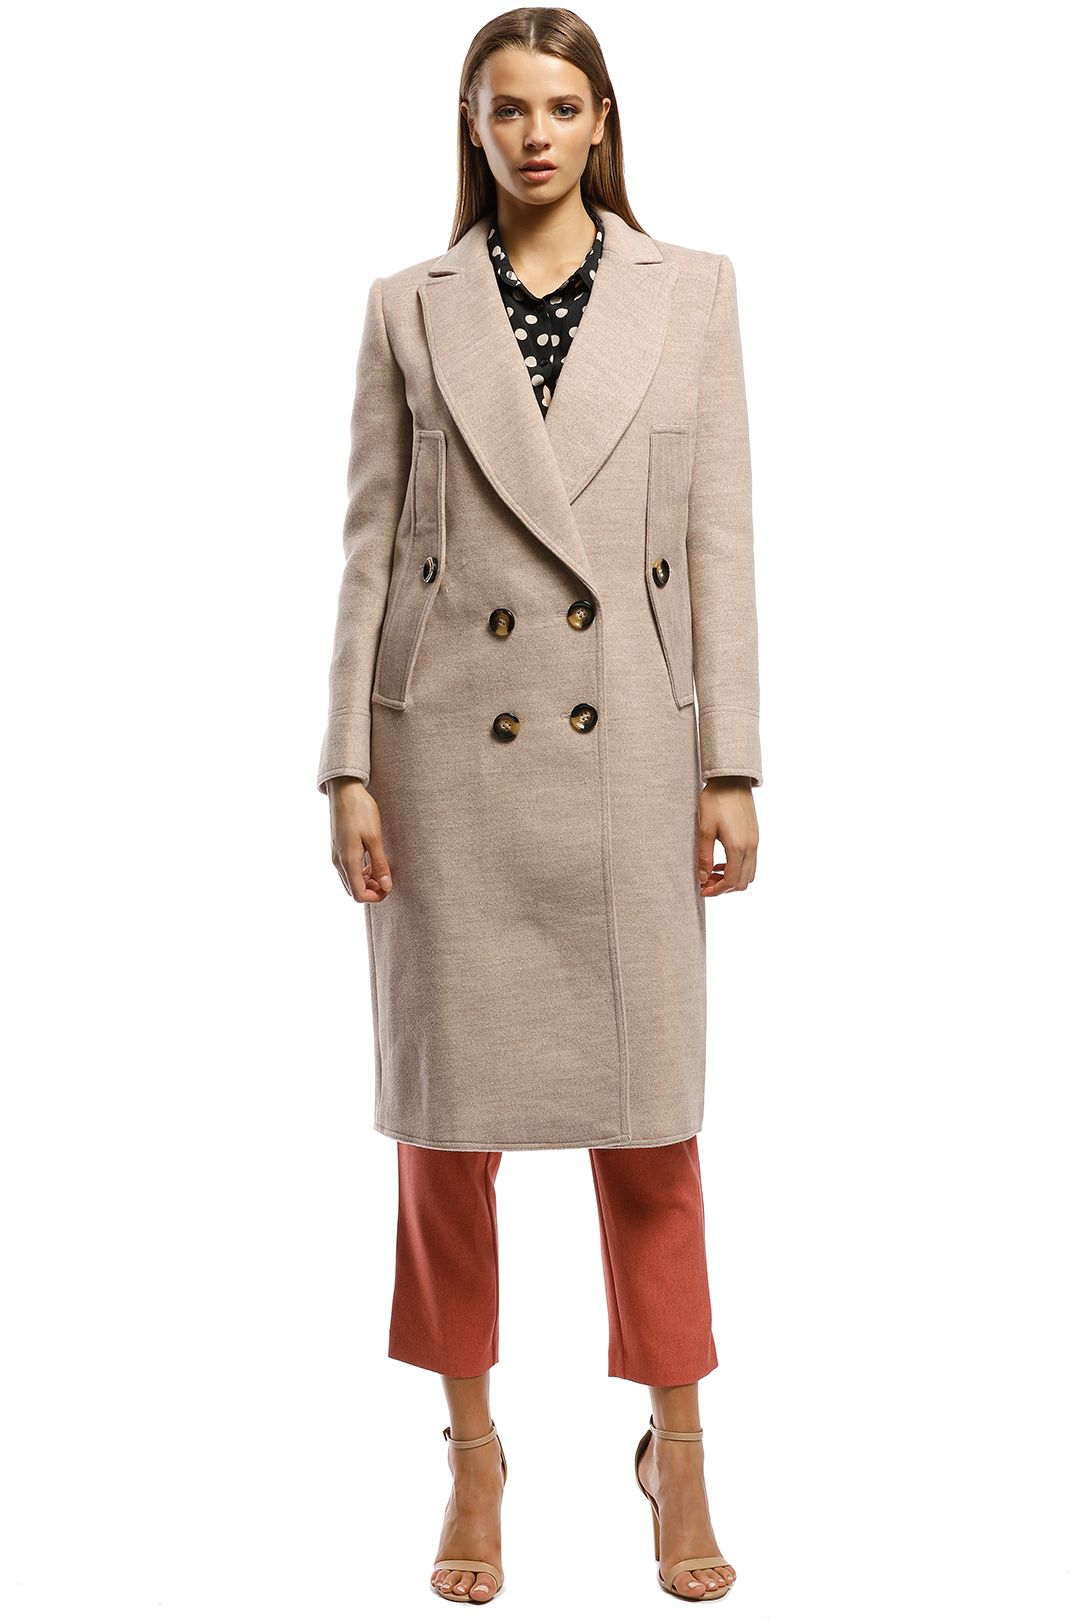 CMEO Collective - Held Up Coat - Brown - Front